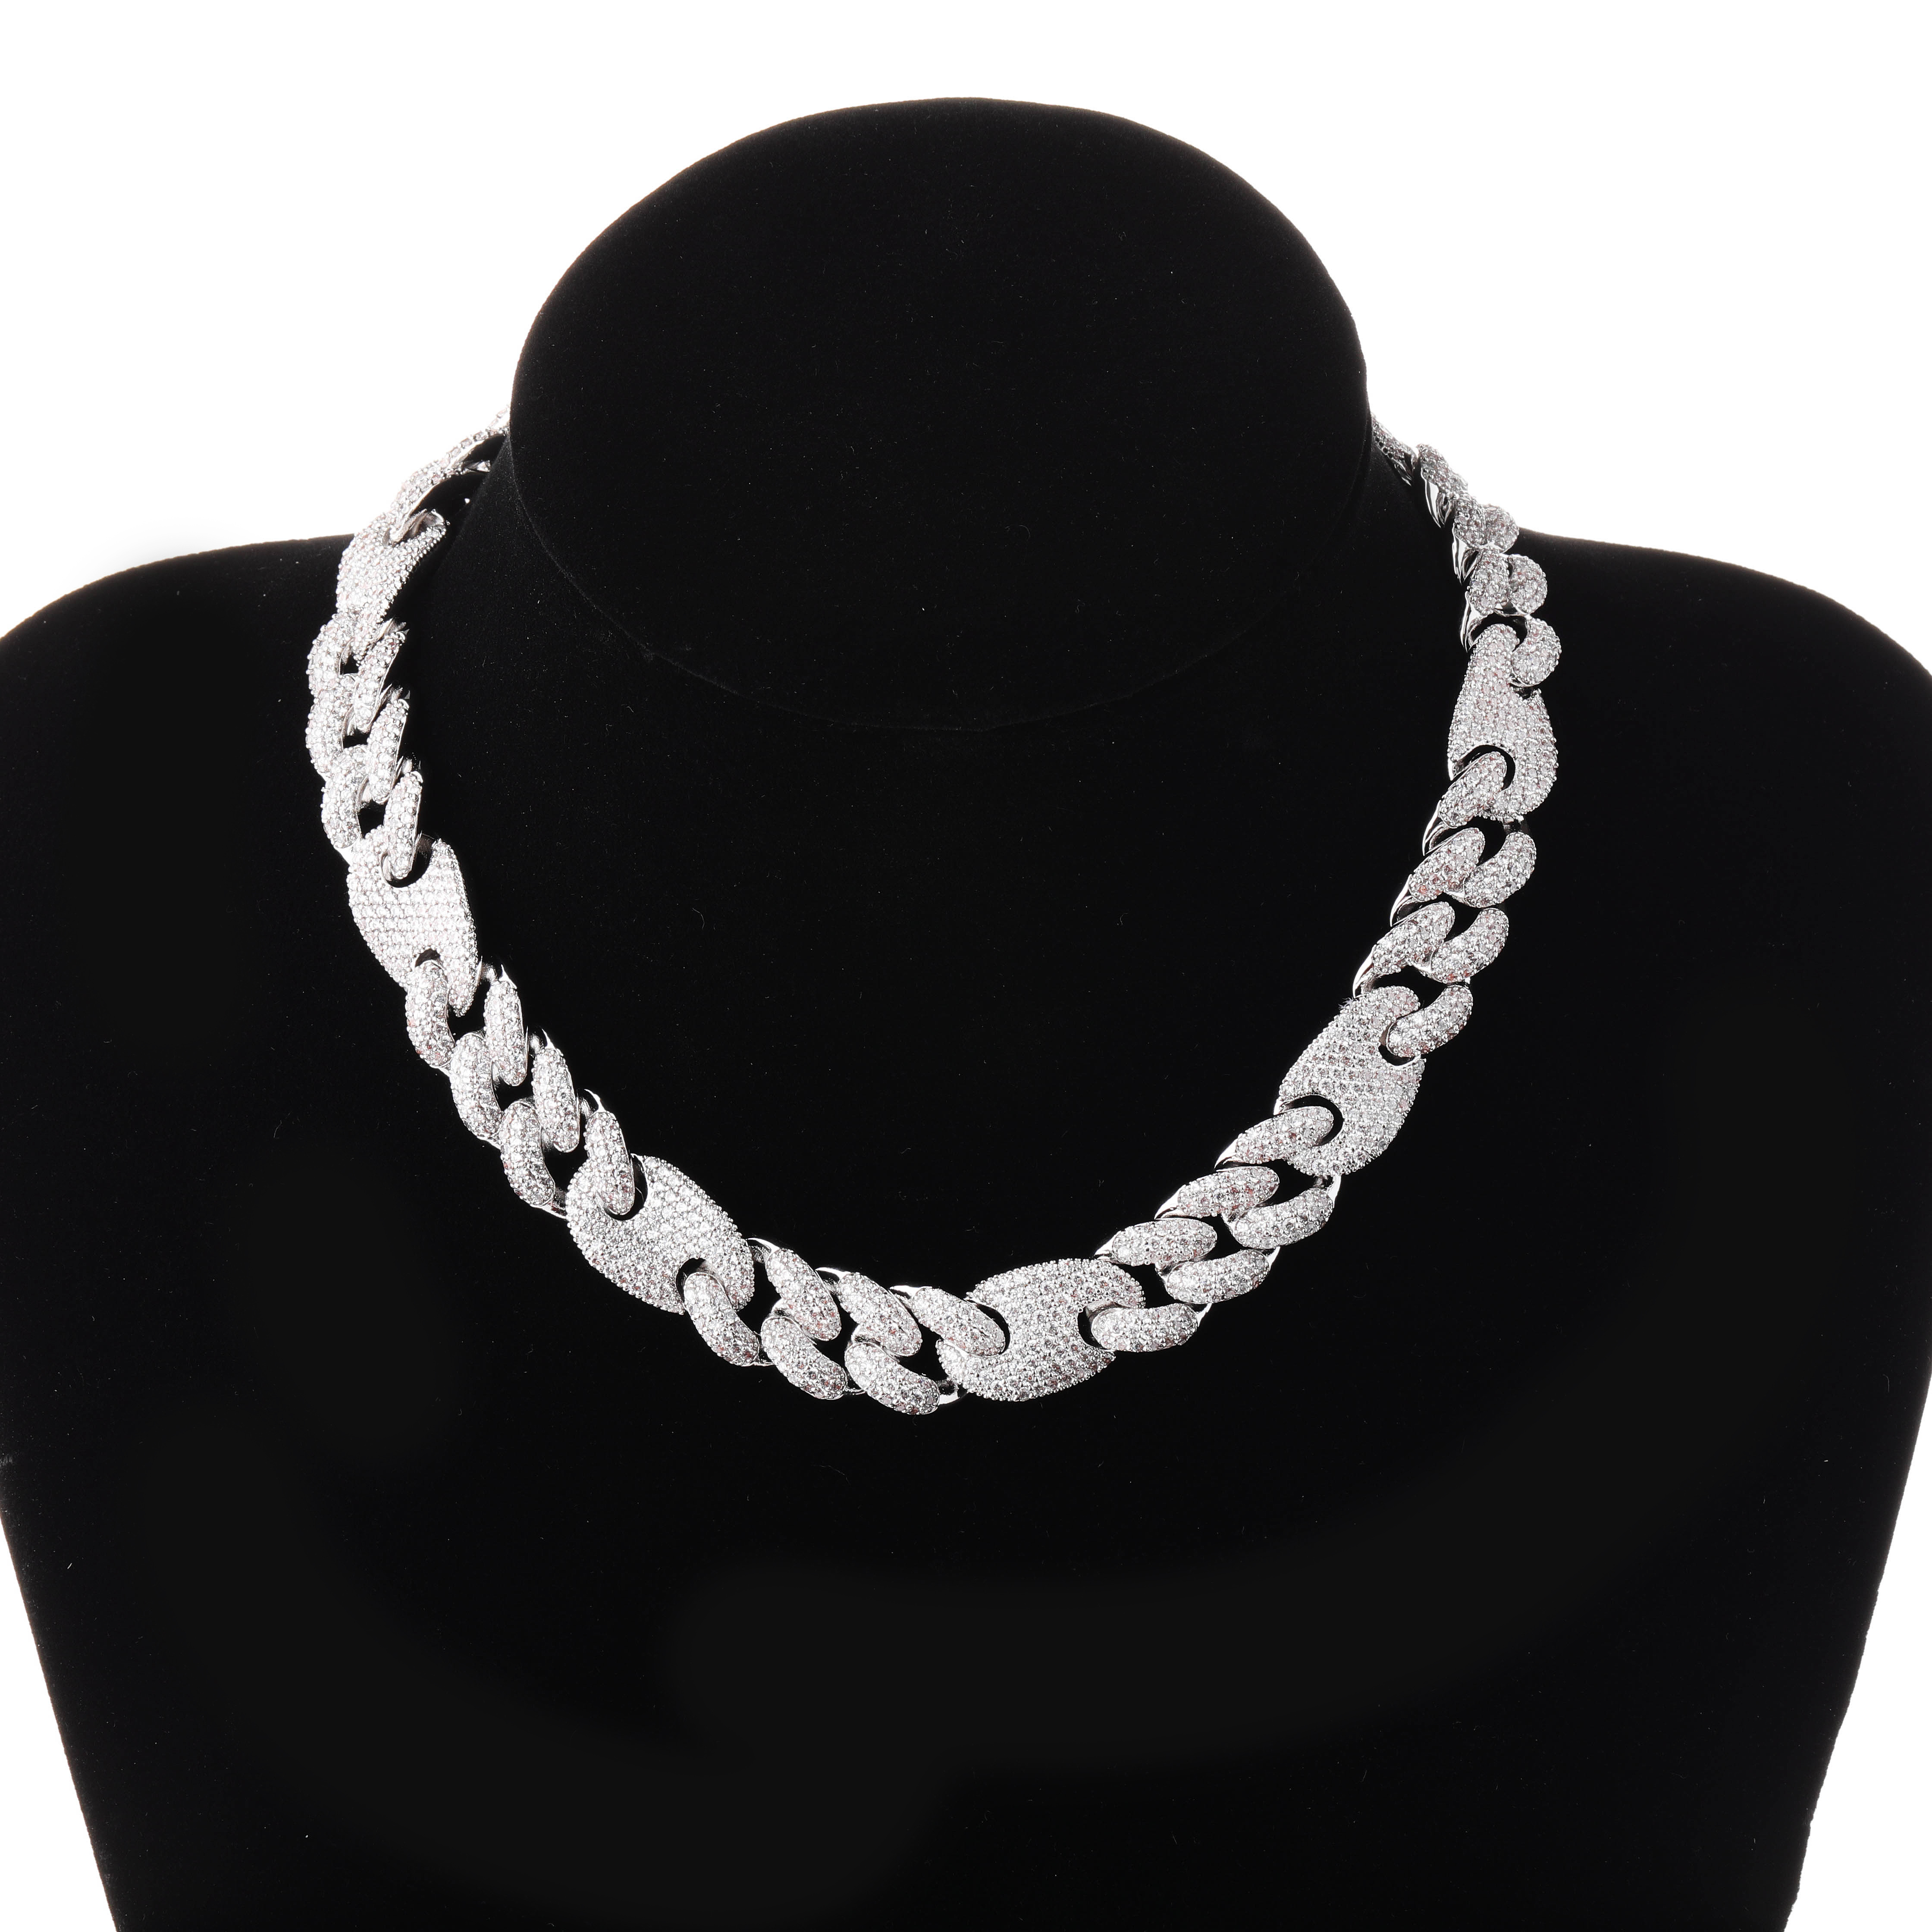 JINAO Chain Gold Necklace Jewelry Cuban-Link Hip-Hop Iced-Out Bling 20mm Cubic-Zirconia